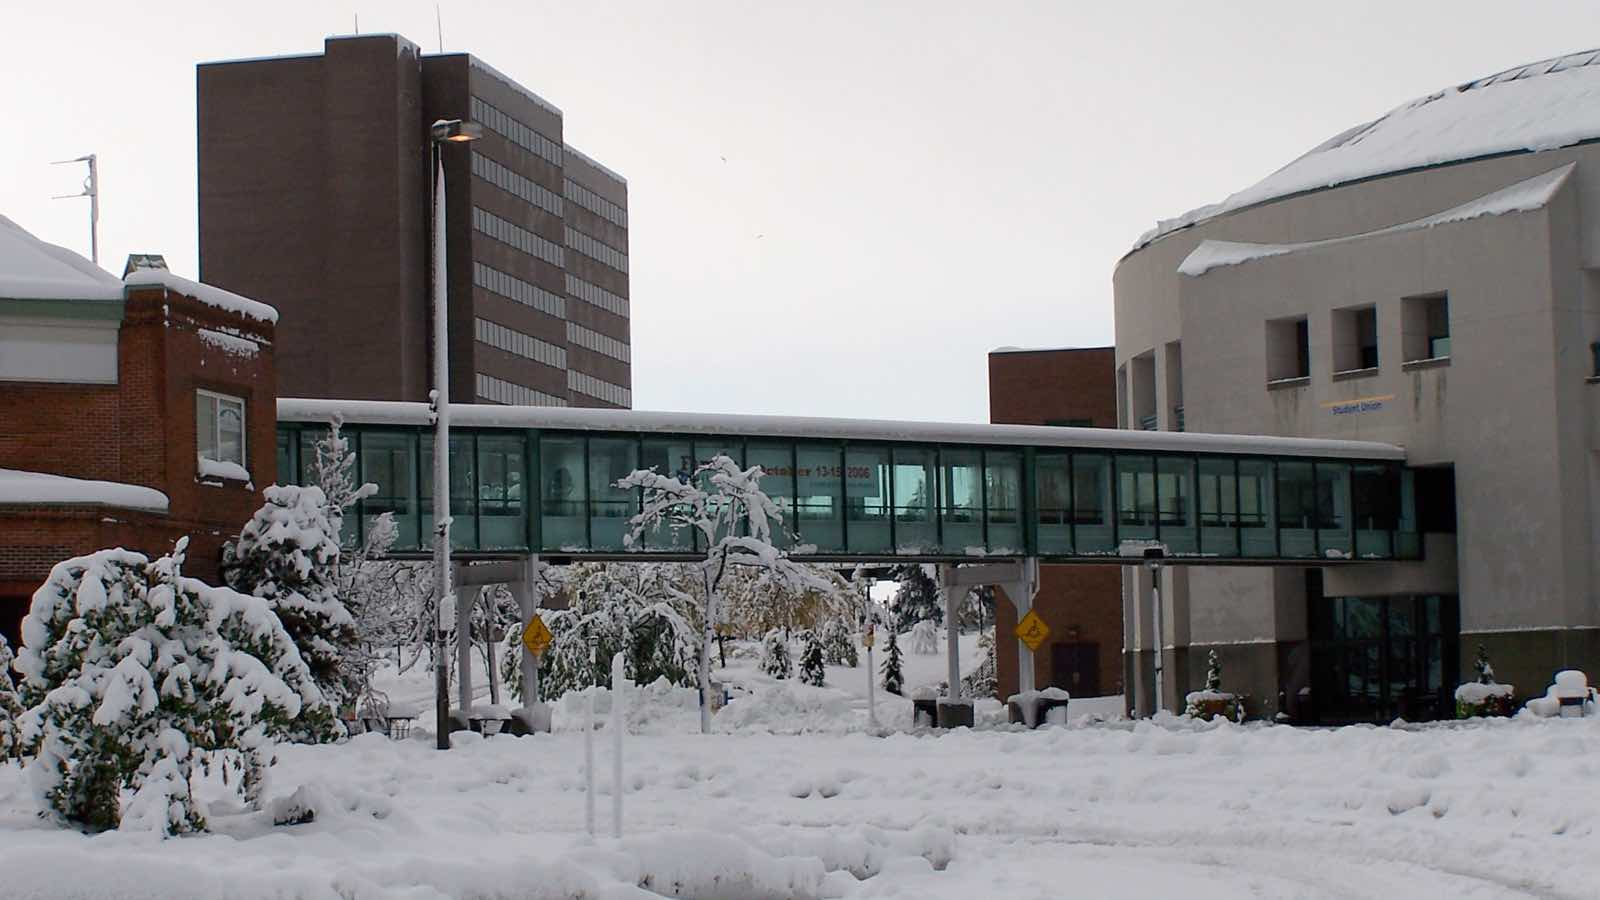 University at Buffalo, facing Clemens Hall, the Student Union, and Commons